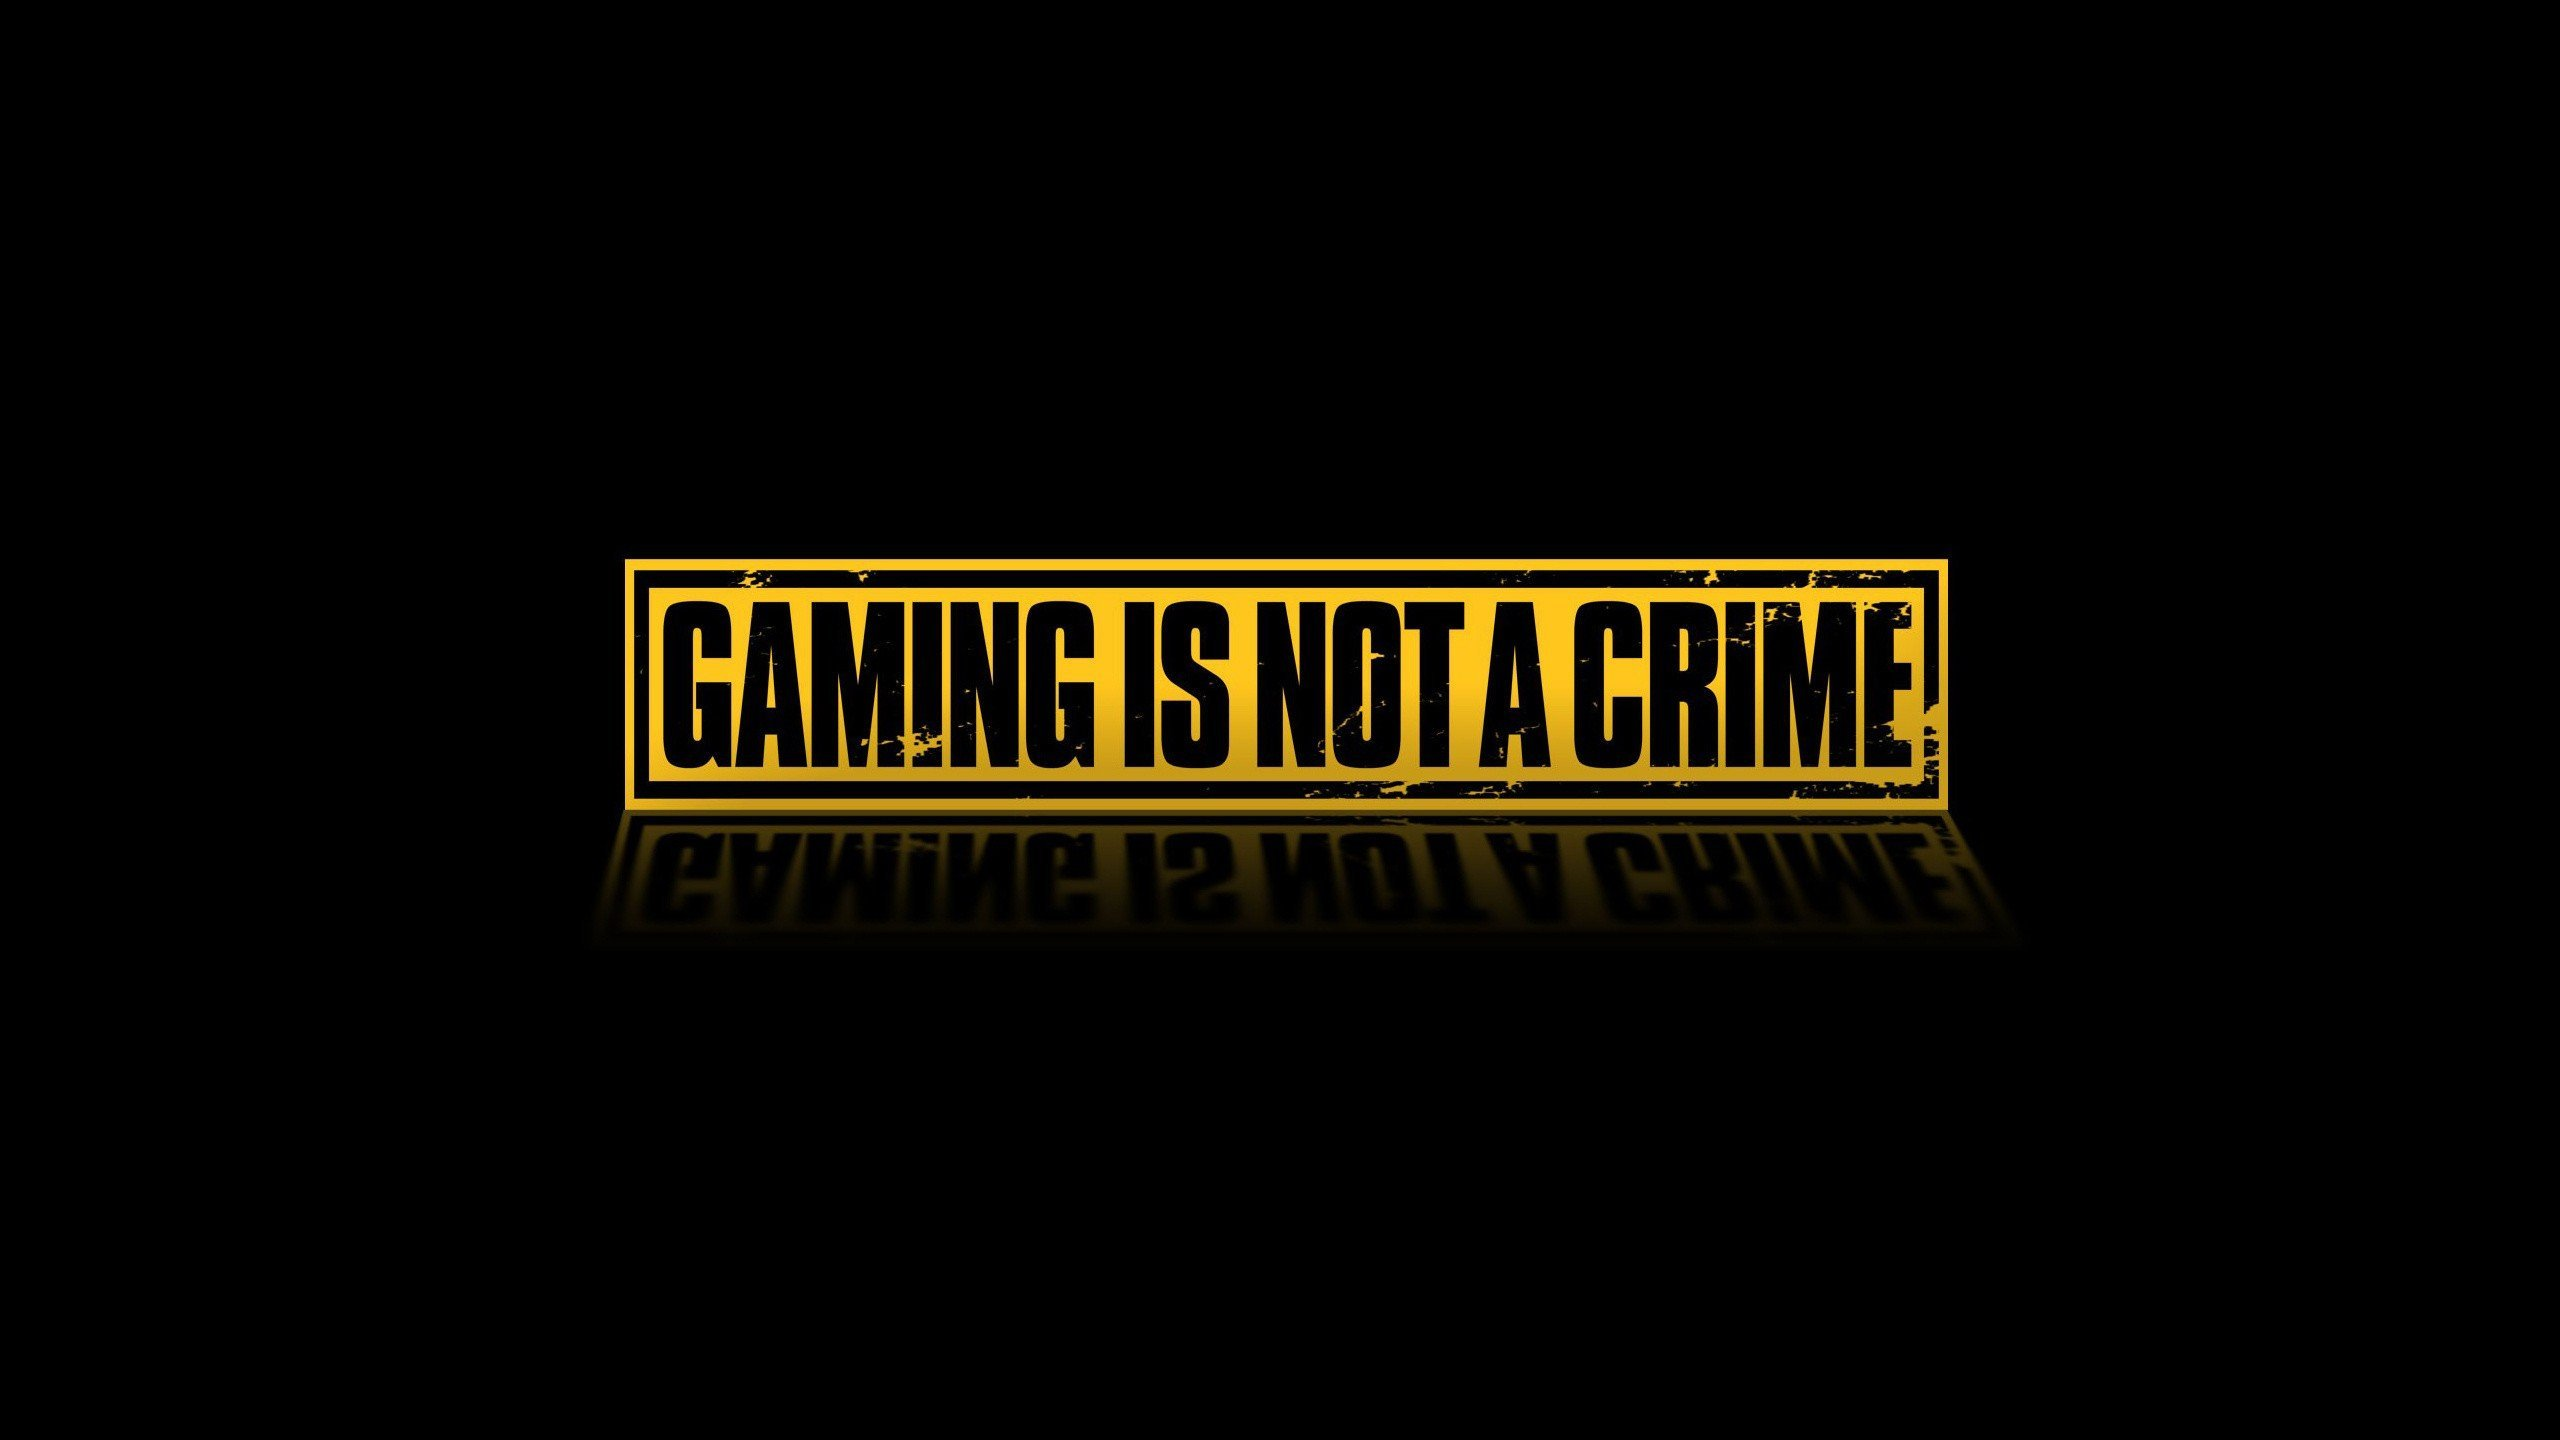 Gaming Is Not A Crime 3891 Wallpapers and Stock Photos 2560x1440